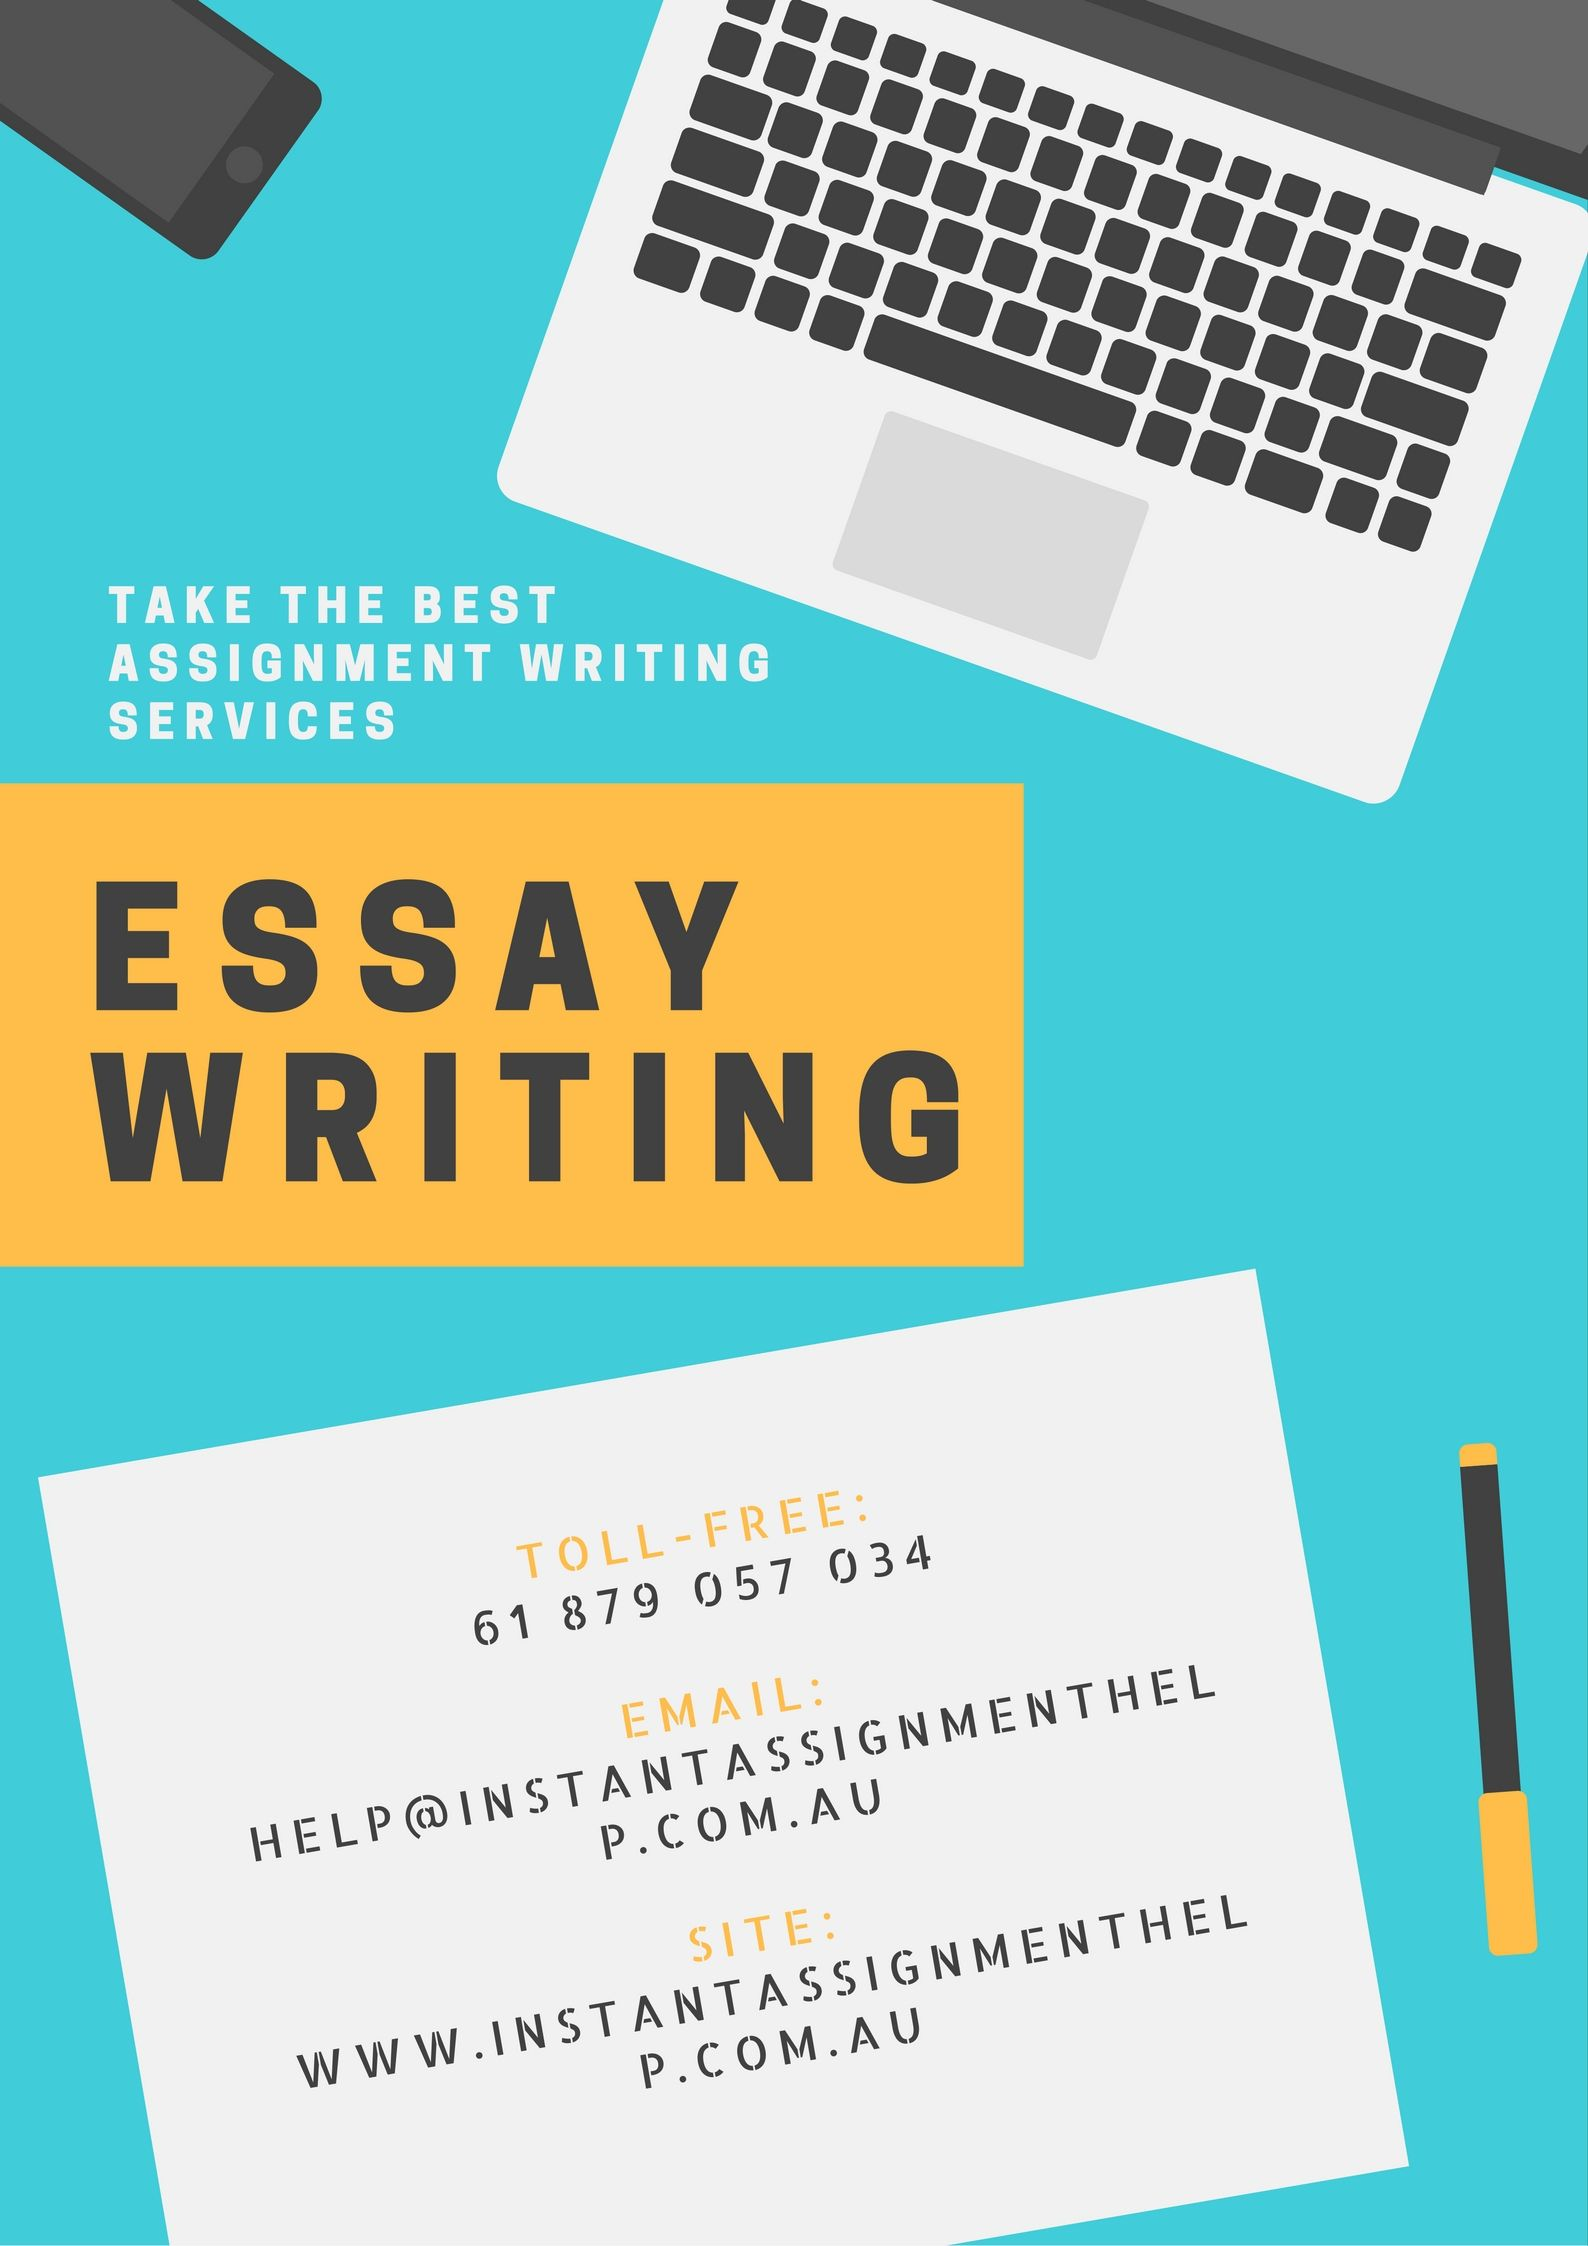 007 Essay Example Writing Help Unusual Online Service Uk Free Full